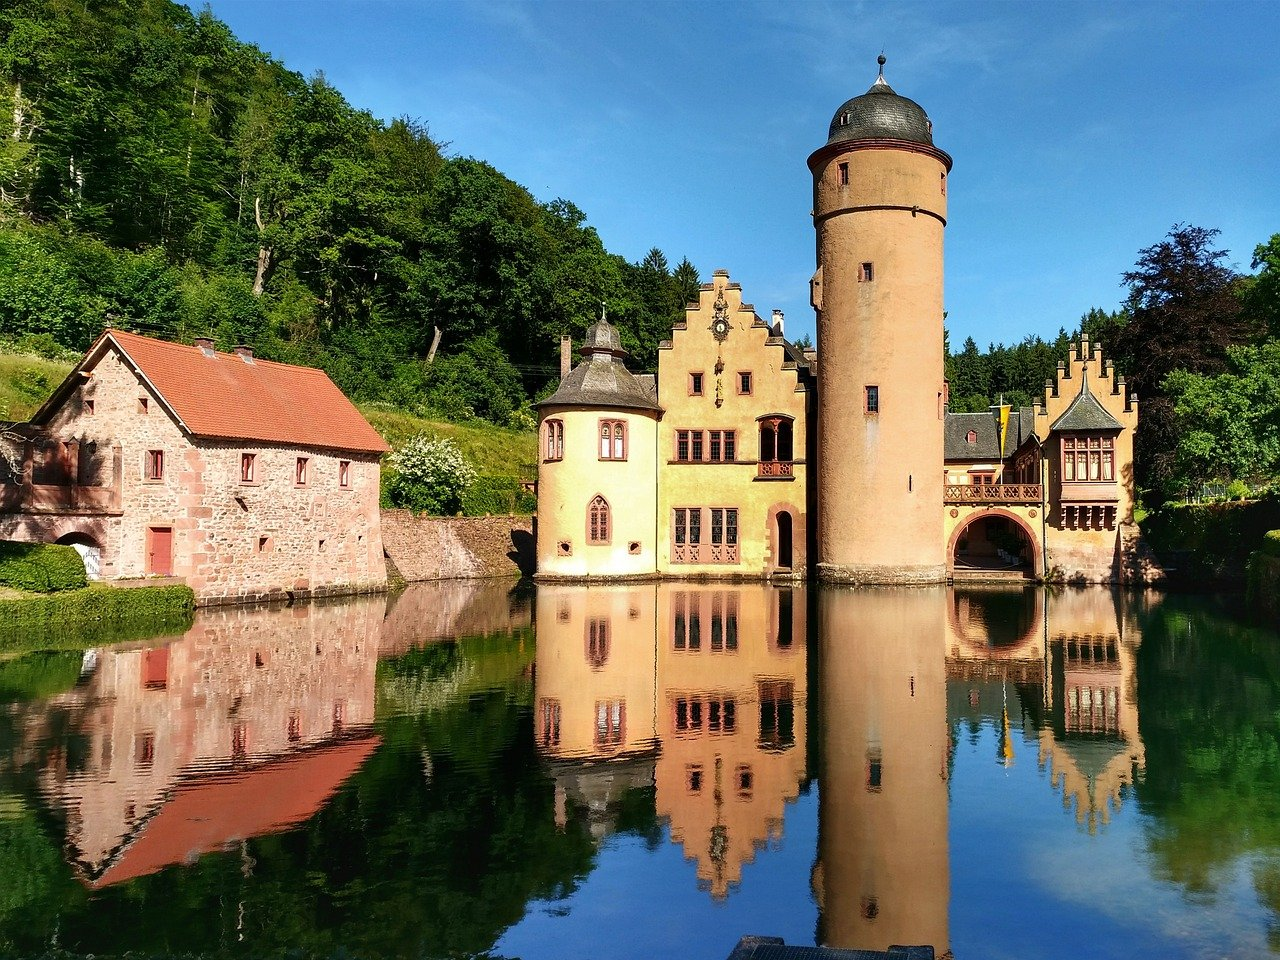 Mespelbrunn Castle, Castles in Germany